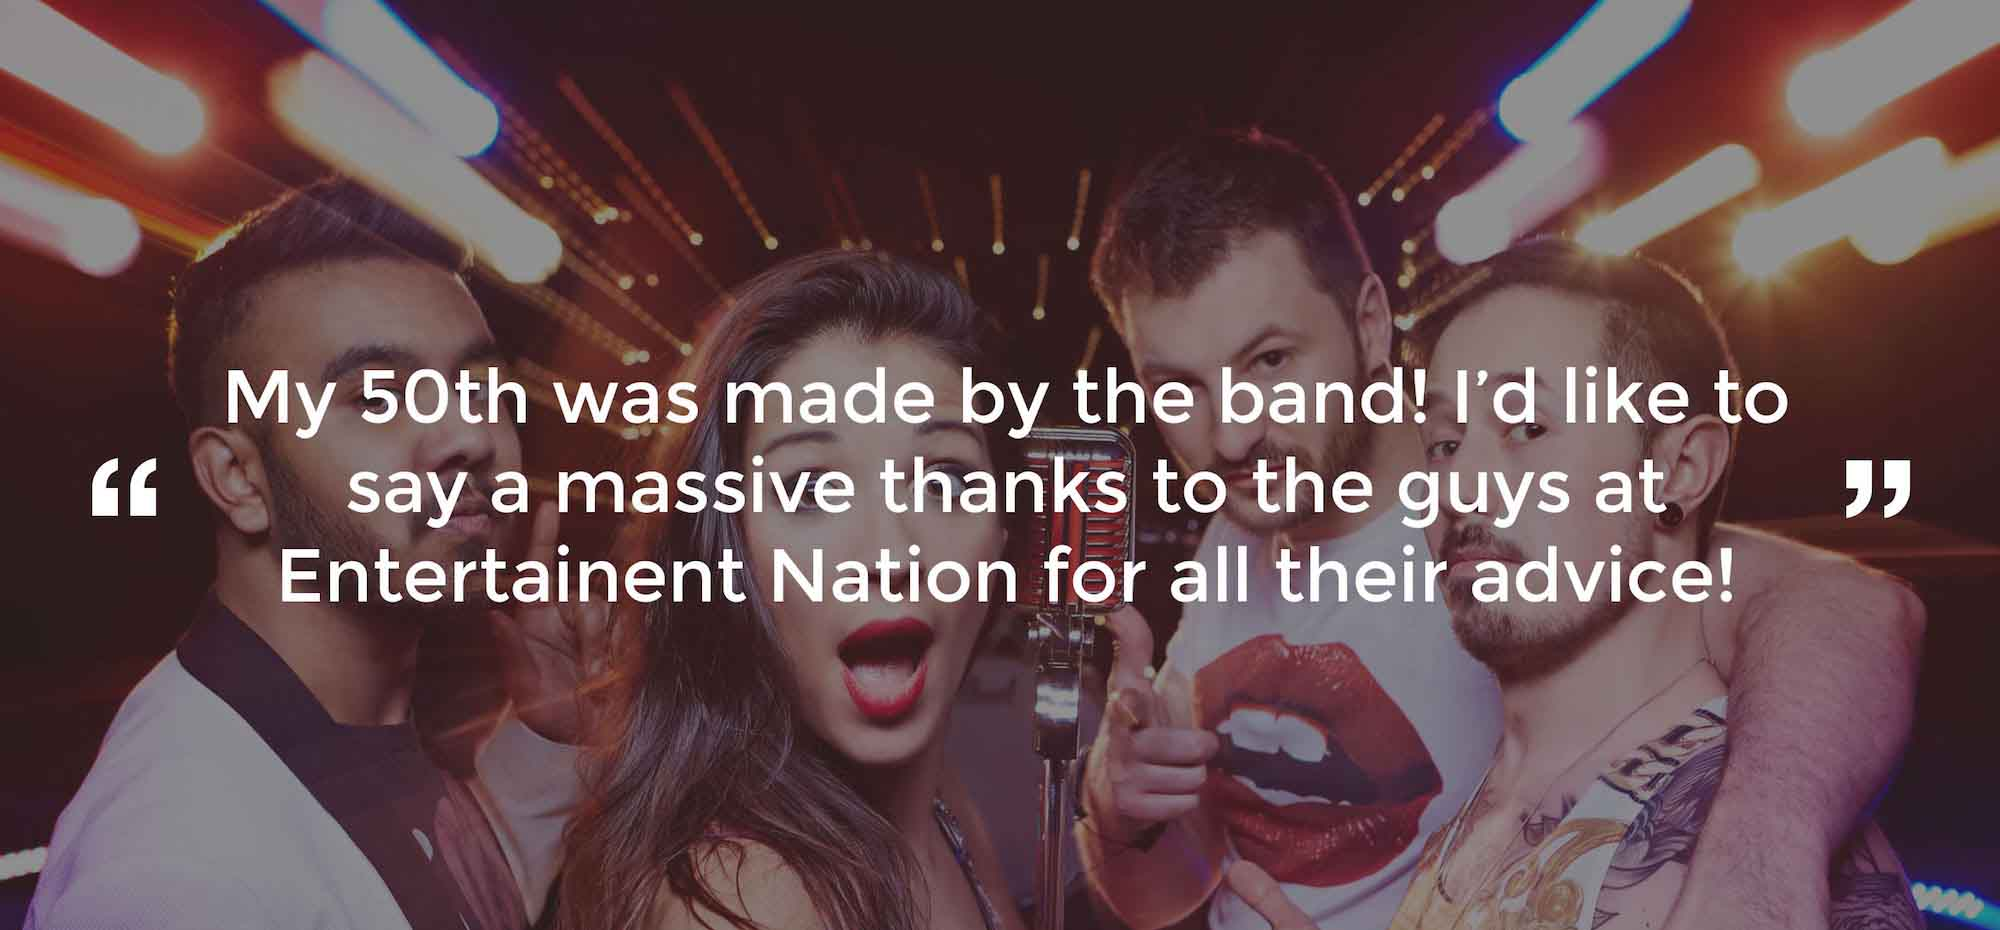 Client Review of a Party Band Suffolk